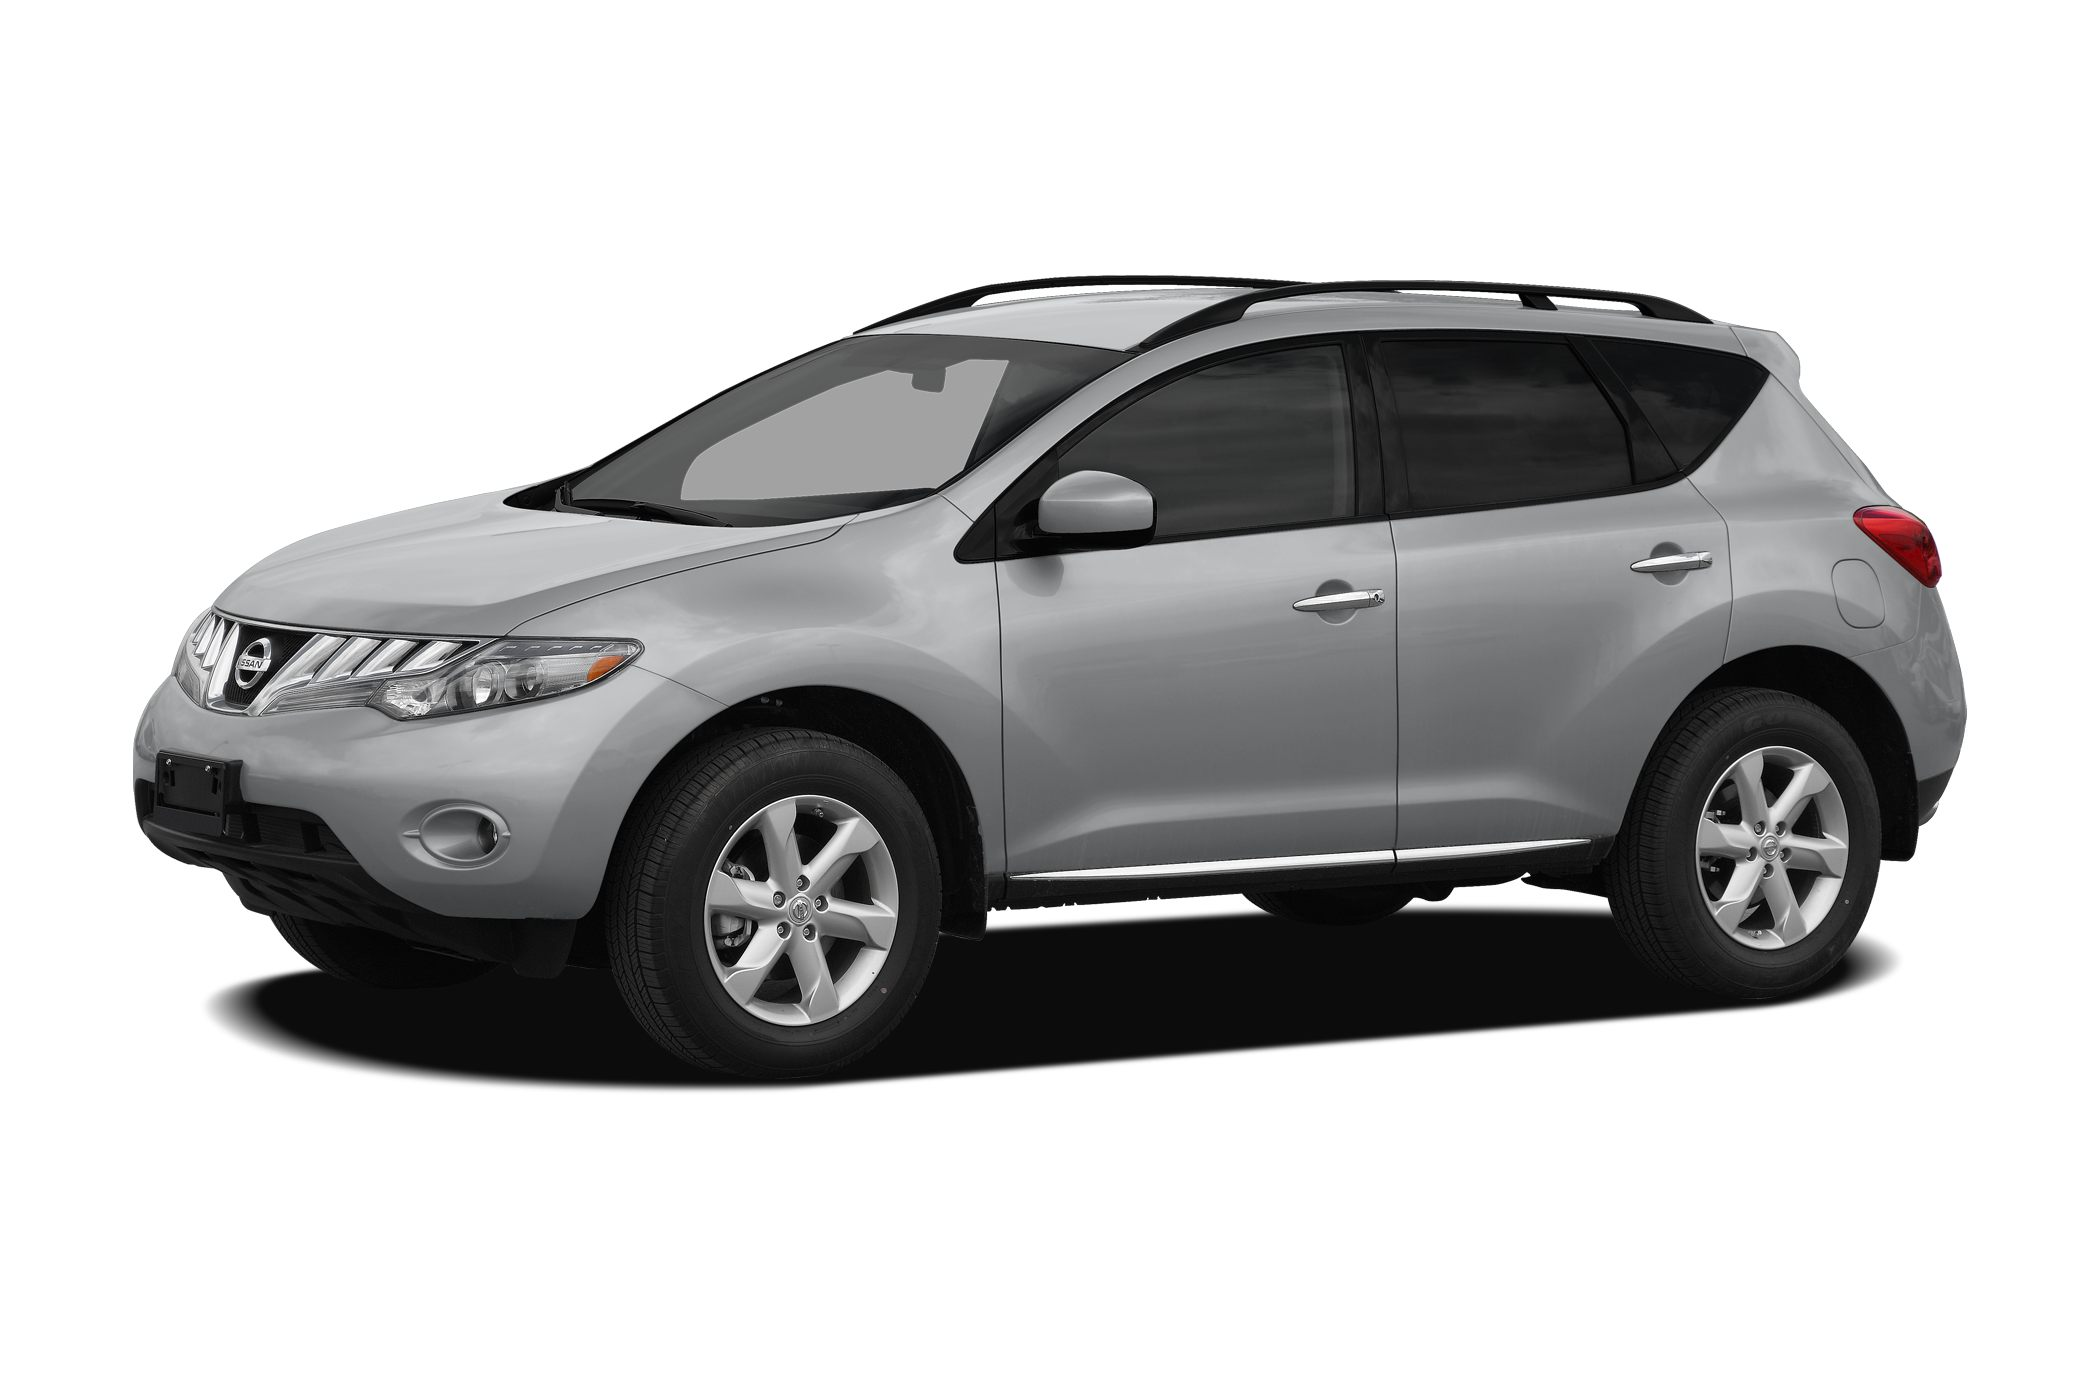 2009 Nissan Murano LE LOW MILES - 66009 REDUCED FROM 18388 PRICED TO MOVE 1800 below Kelley